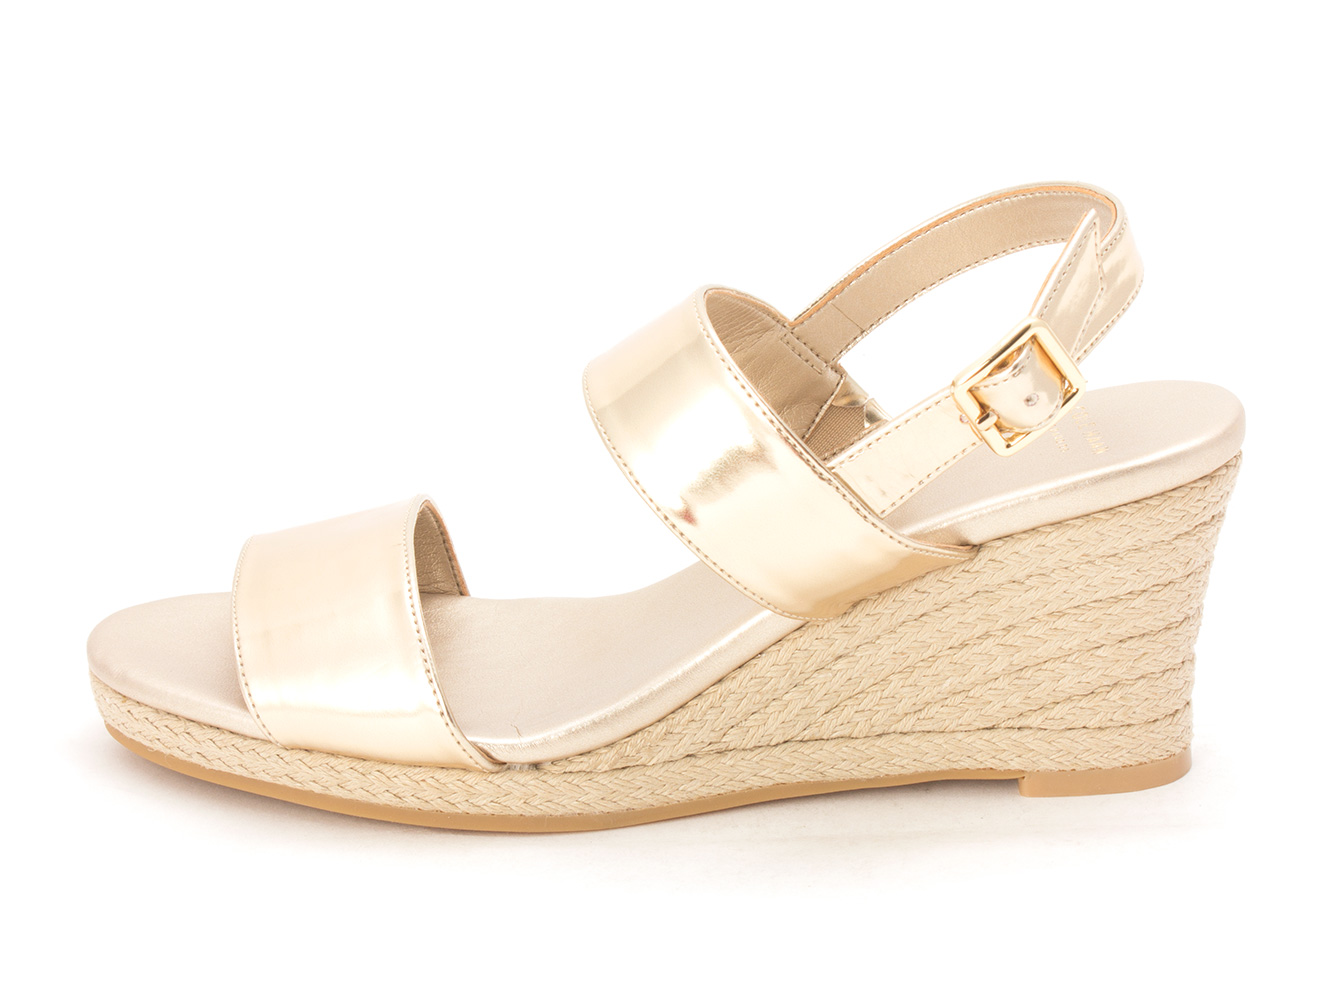 Cole Haan Womens 14A4177 Open Toe Casual Platform Sandals Soft Gold Size 60